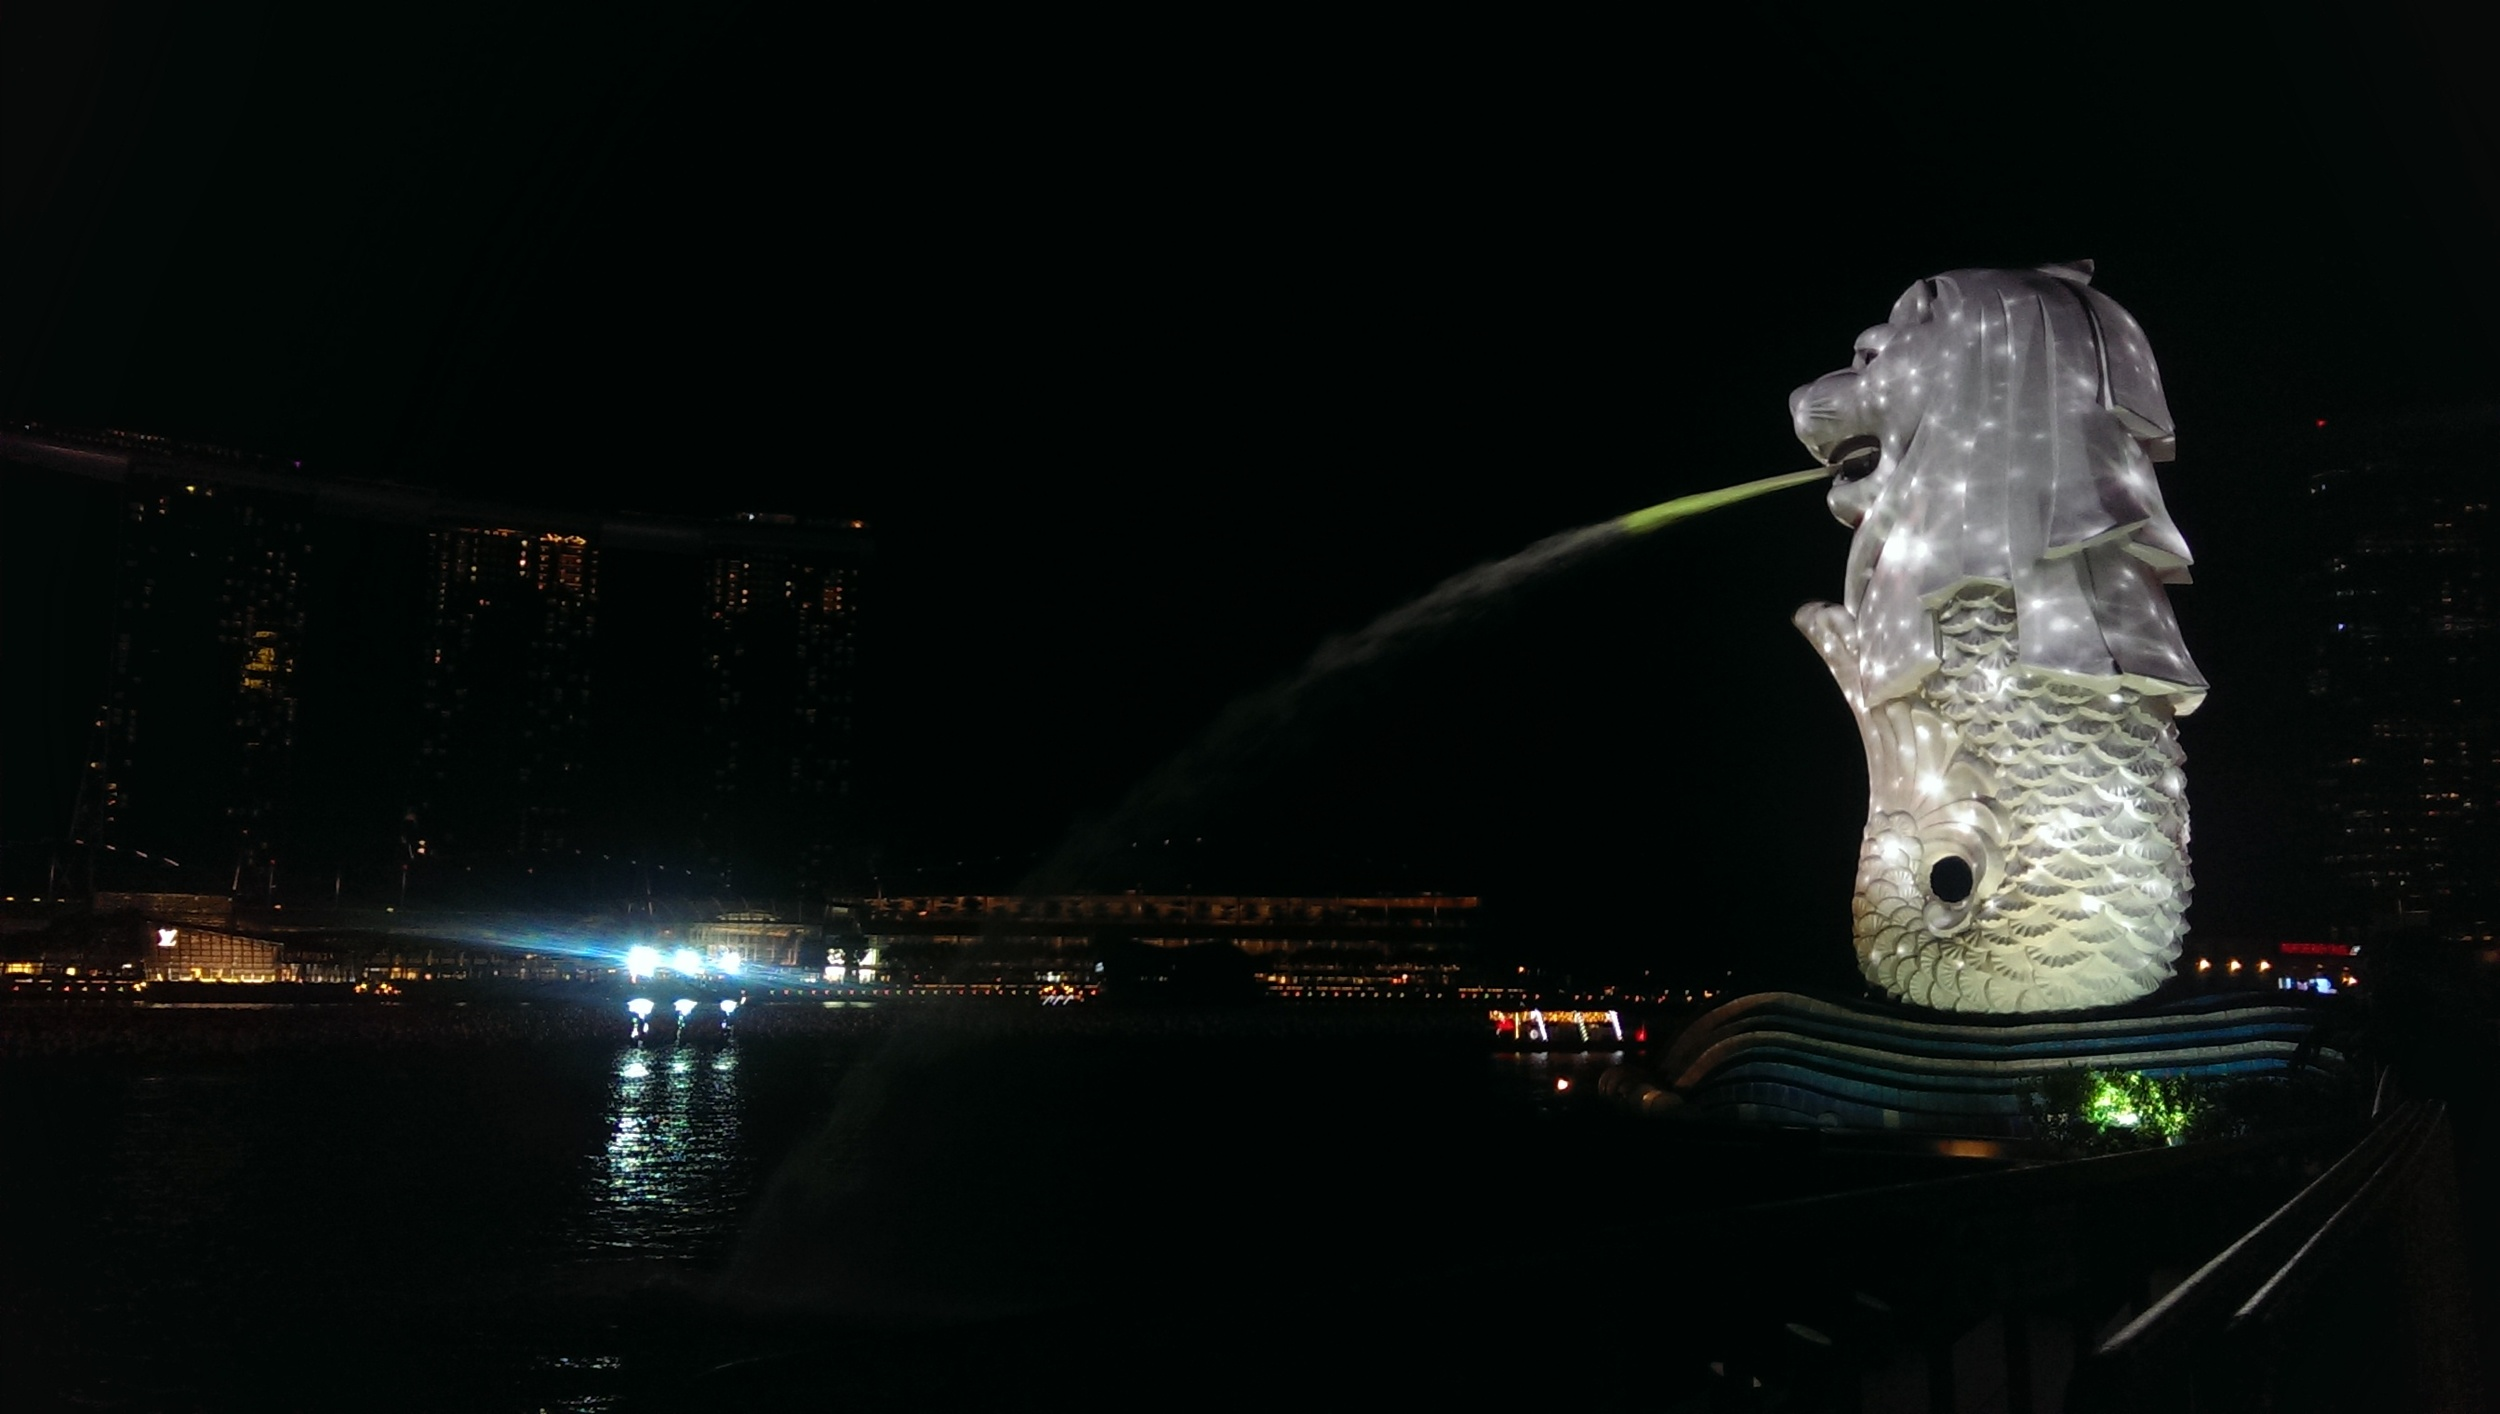 the evening Merlion gurgitating into the Marina Bay.